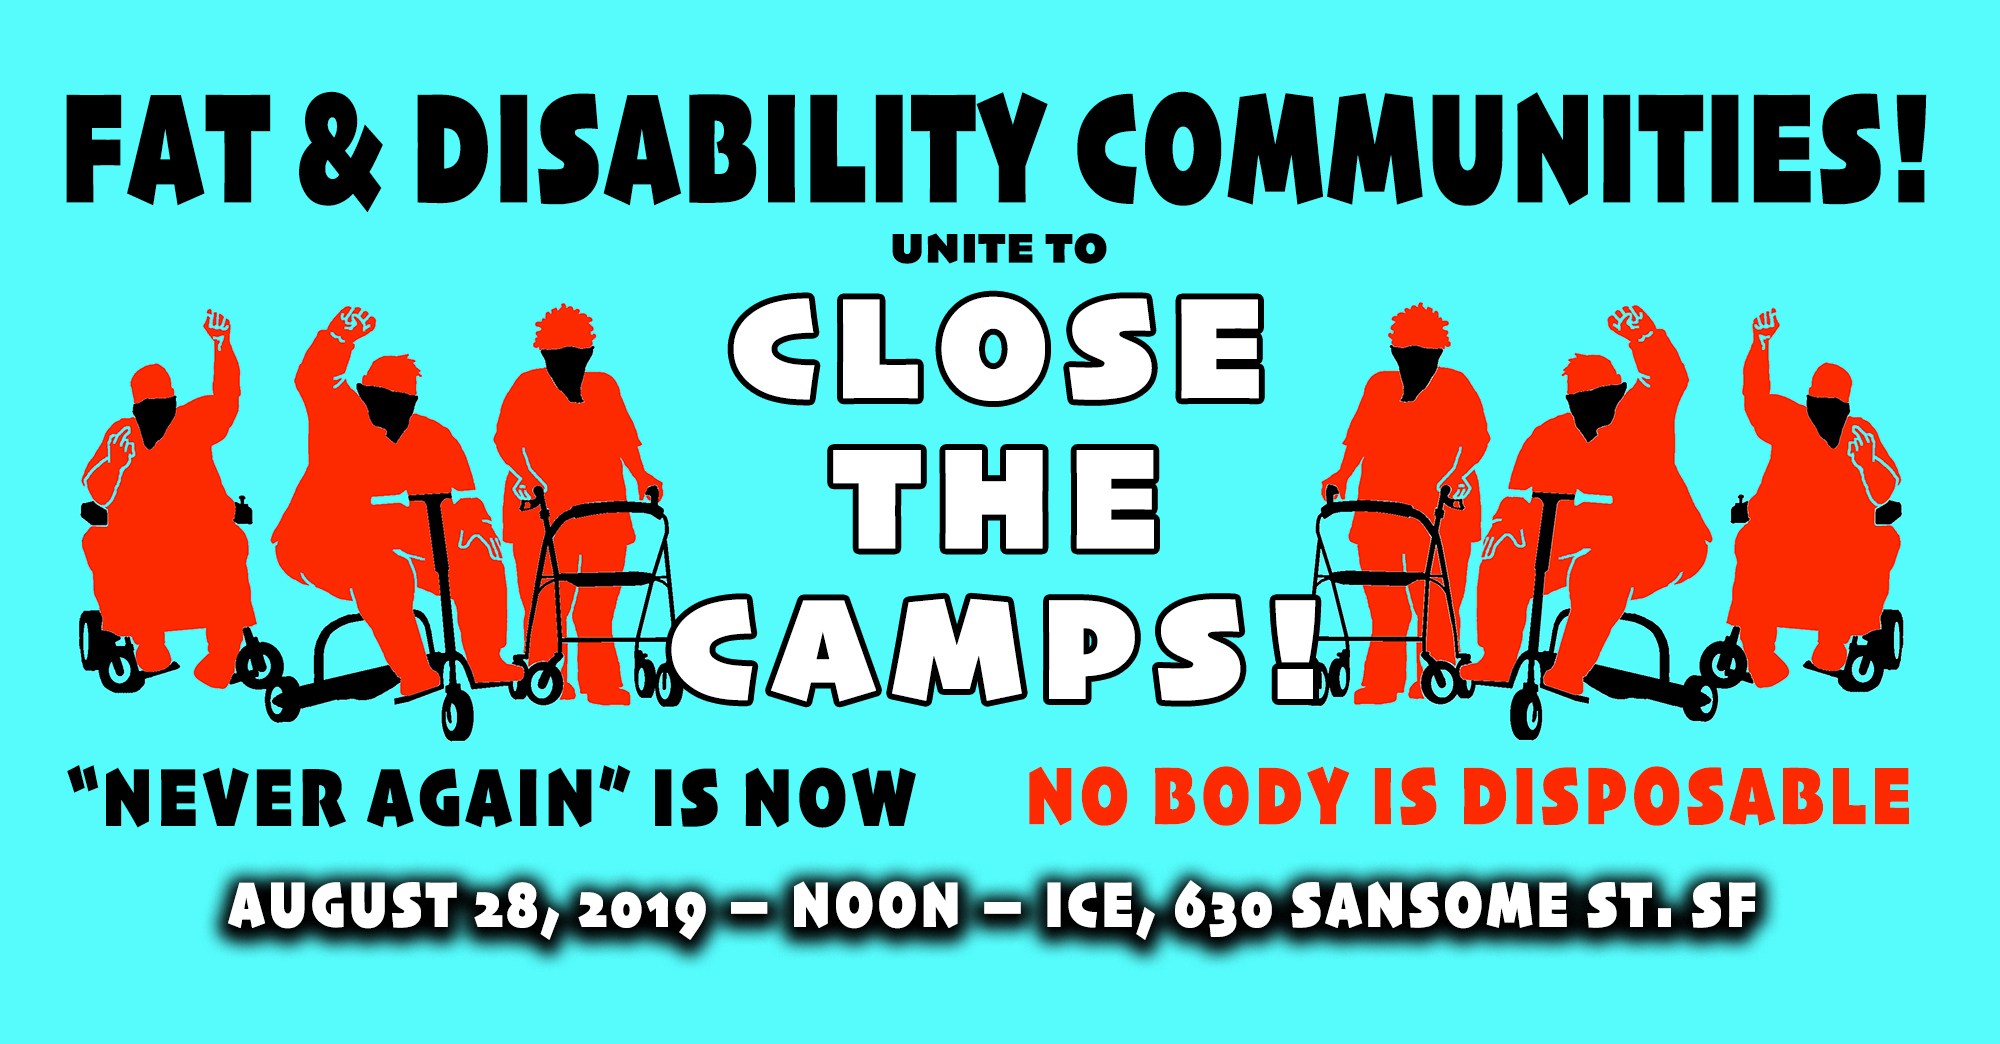 CLOSE THE CAMPS!